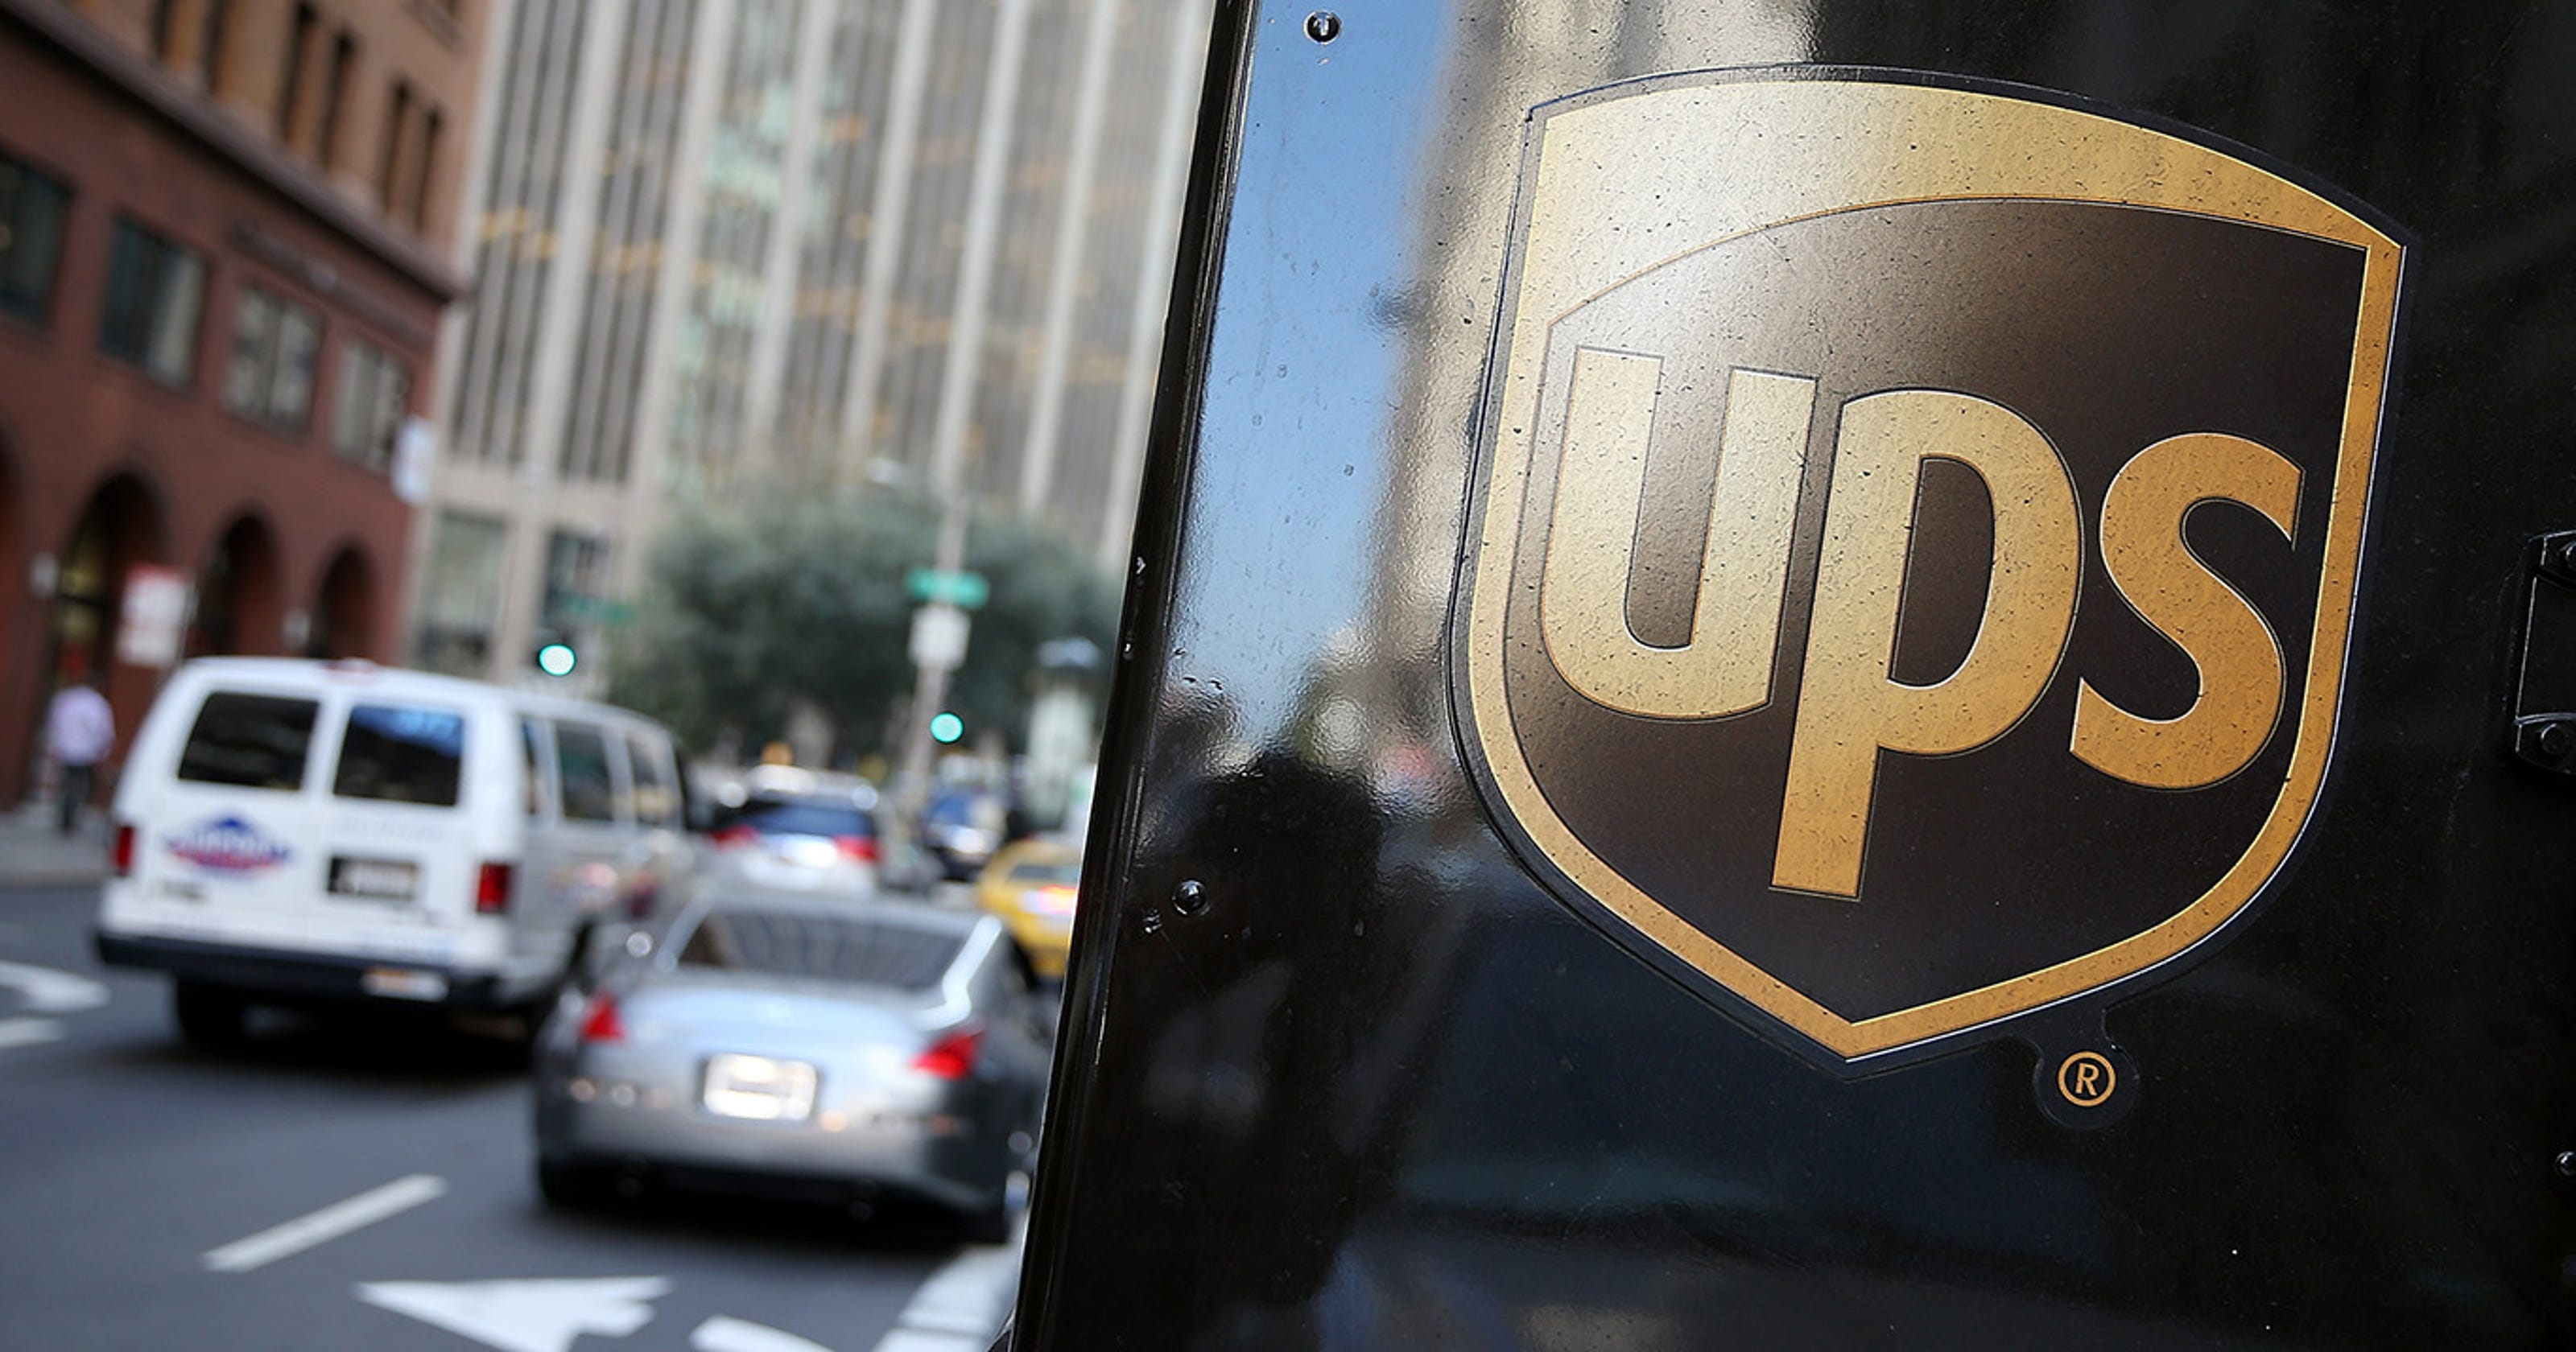 Ups Strike Teamsters Authorize Possible Work Stoppage